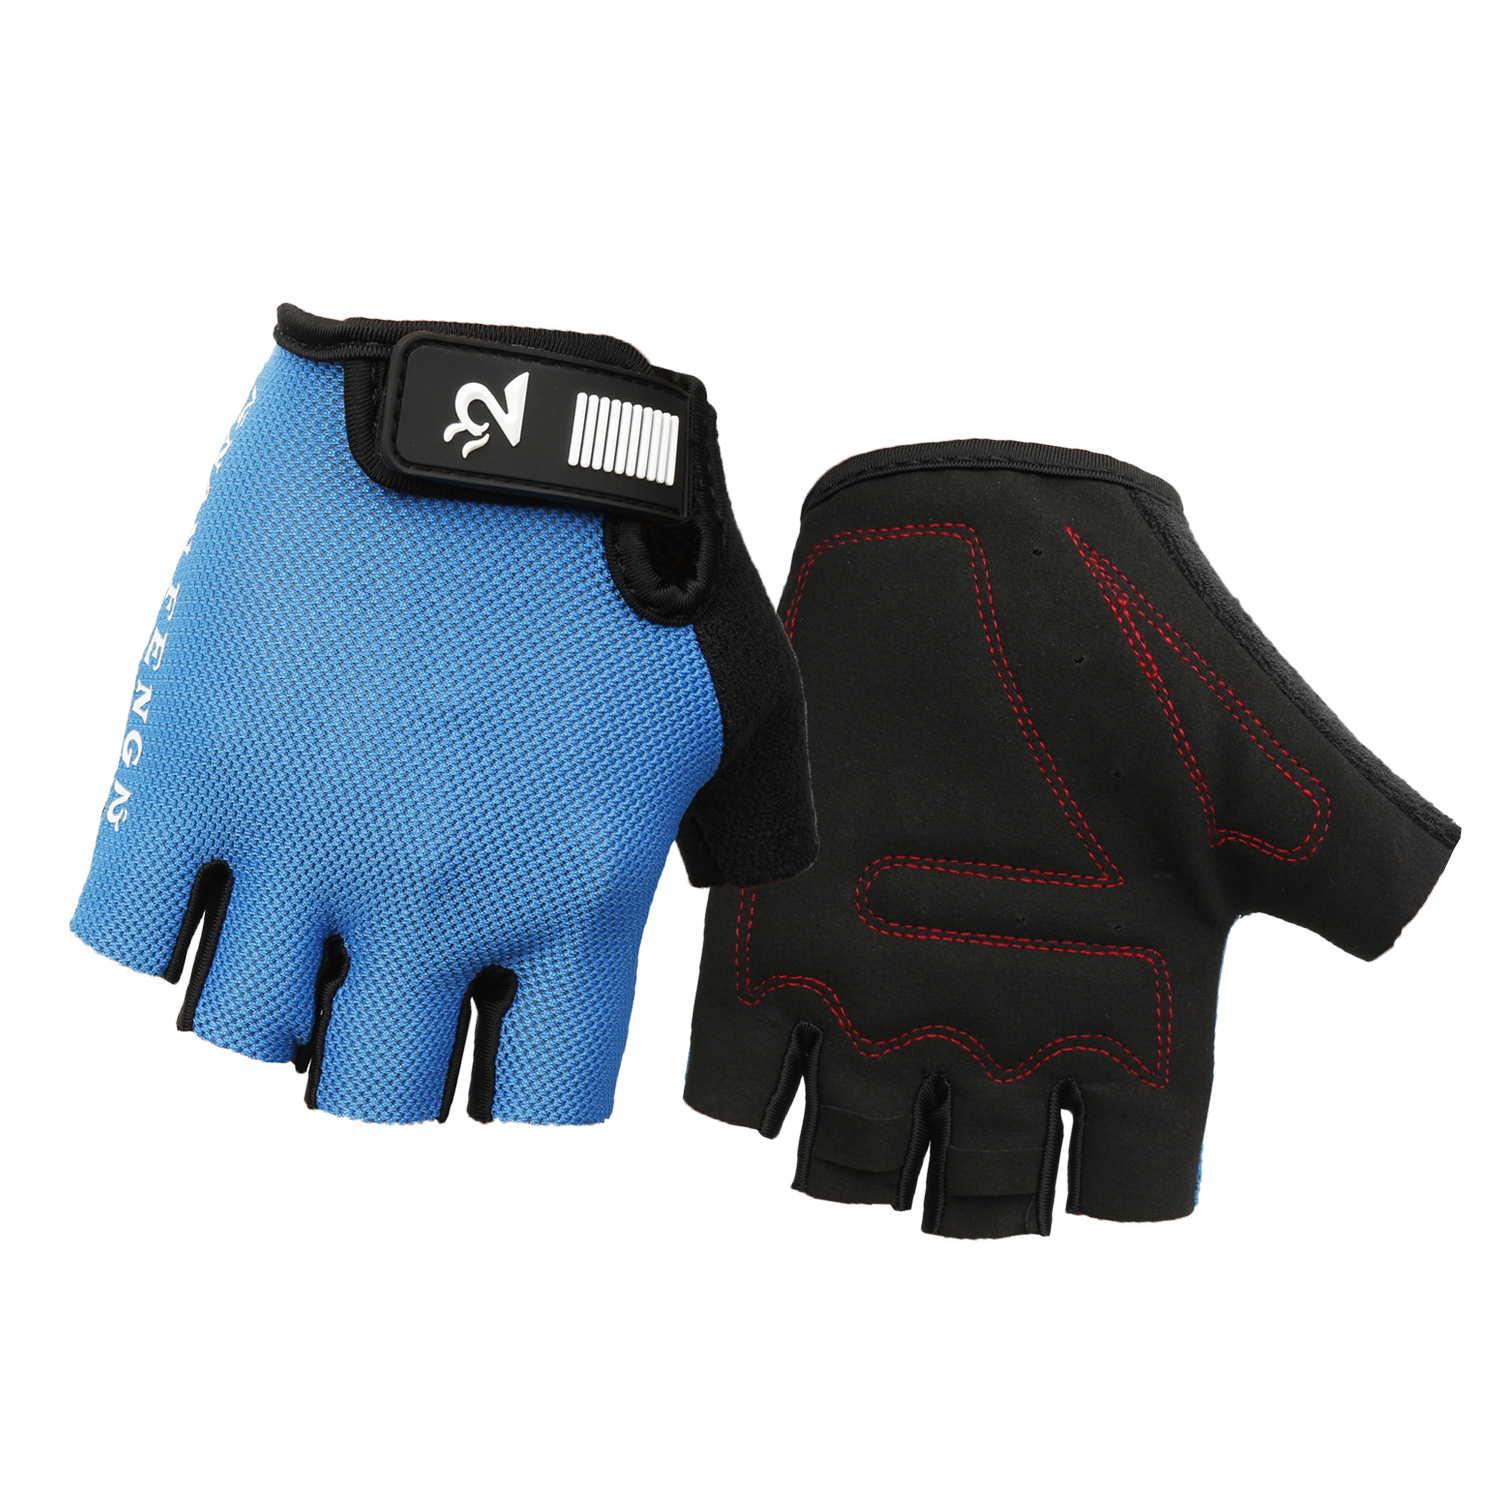 Mens gloves no fingers - Half Finger Cycling Gloves Fingerless For Bicycle Bike Mtb Racing Gloves Without Fingers Male Female Guantes